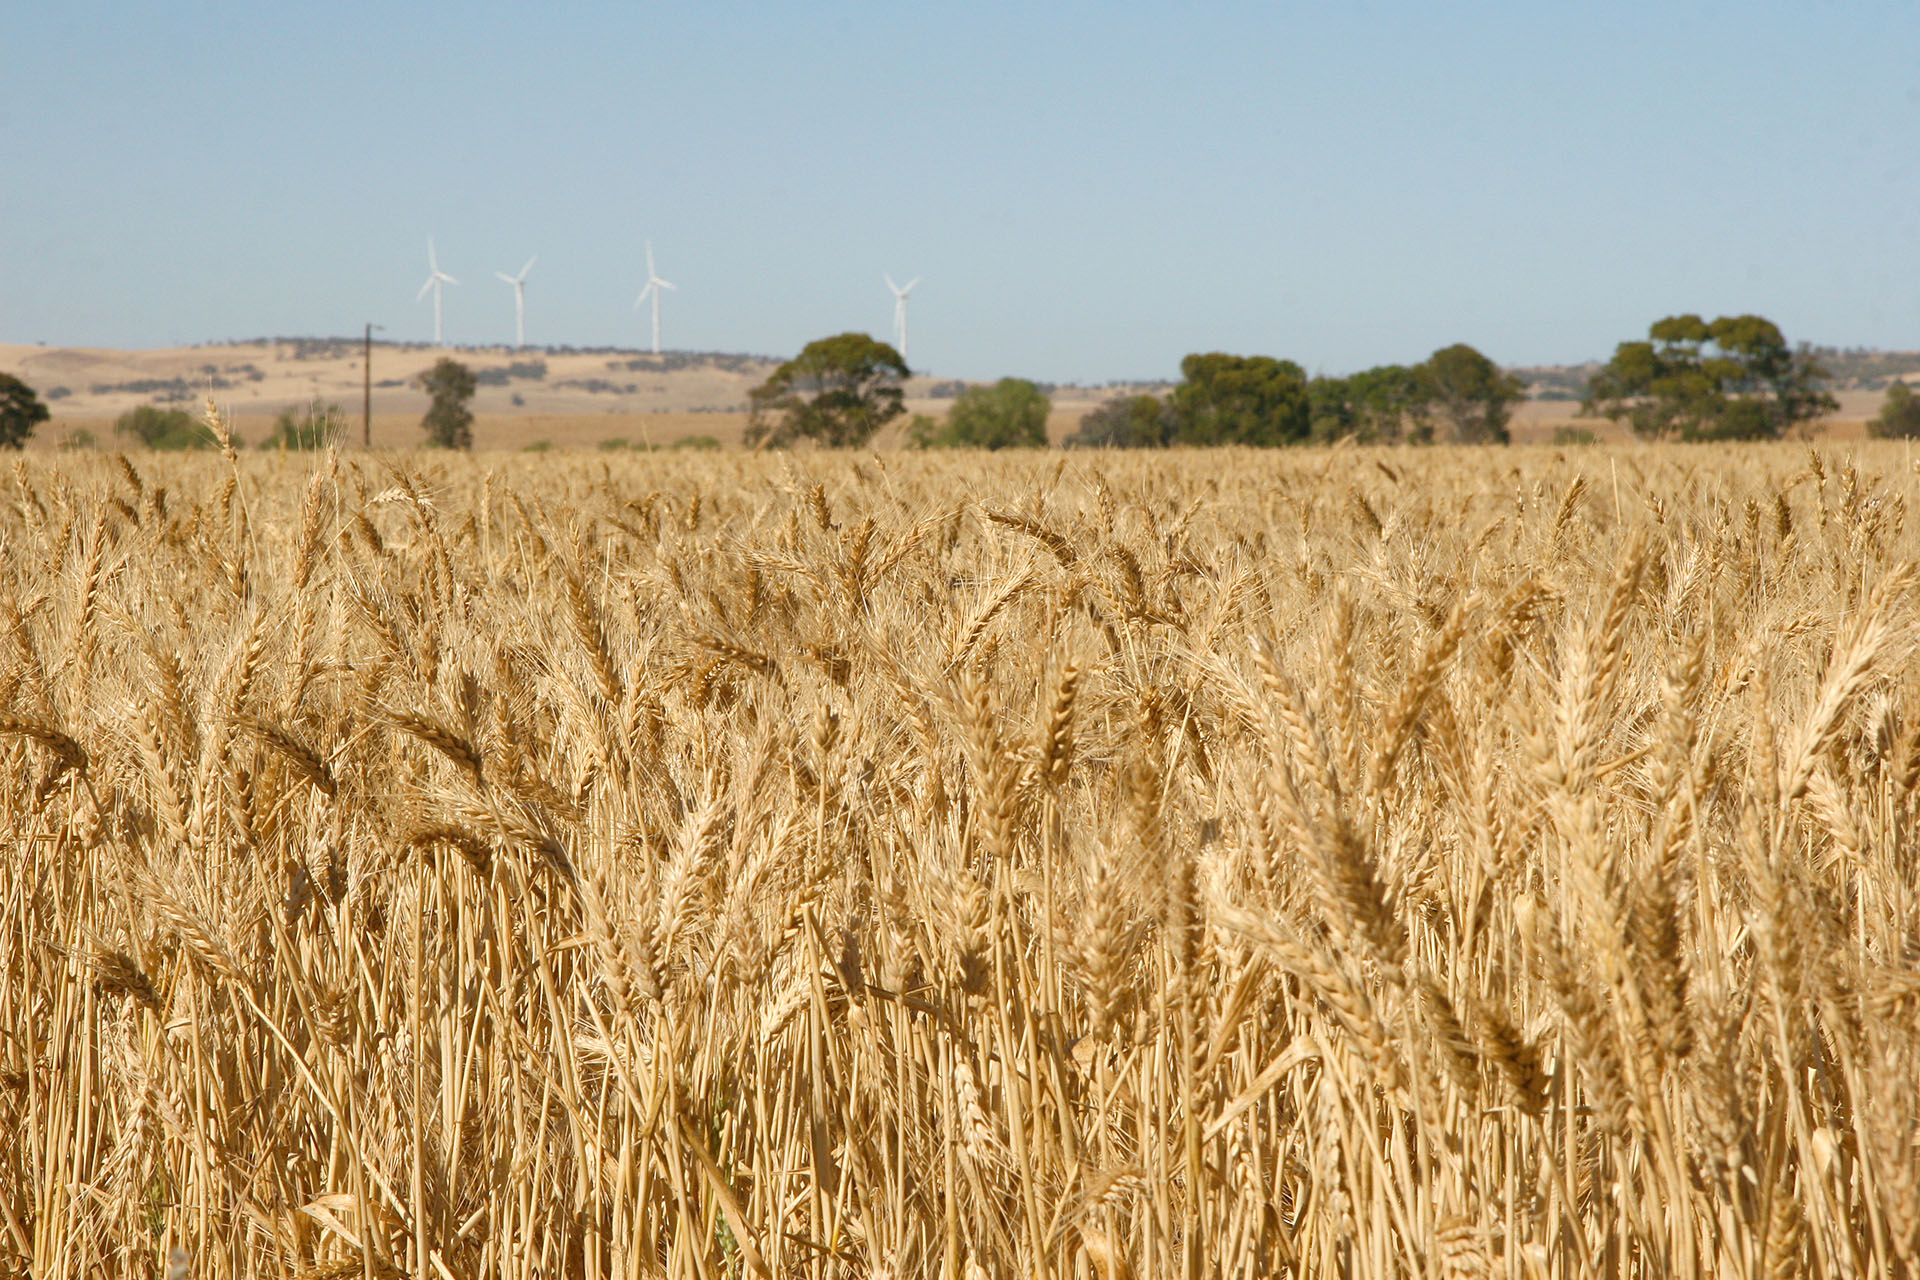 Wheat and windmills: a typical look of the area.